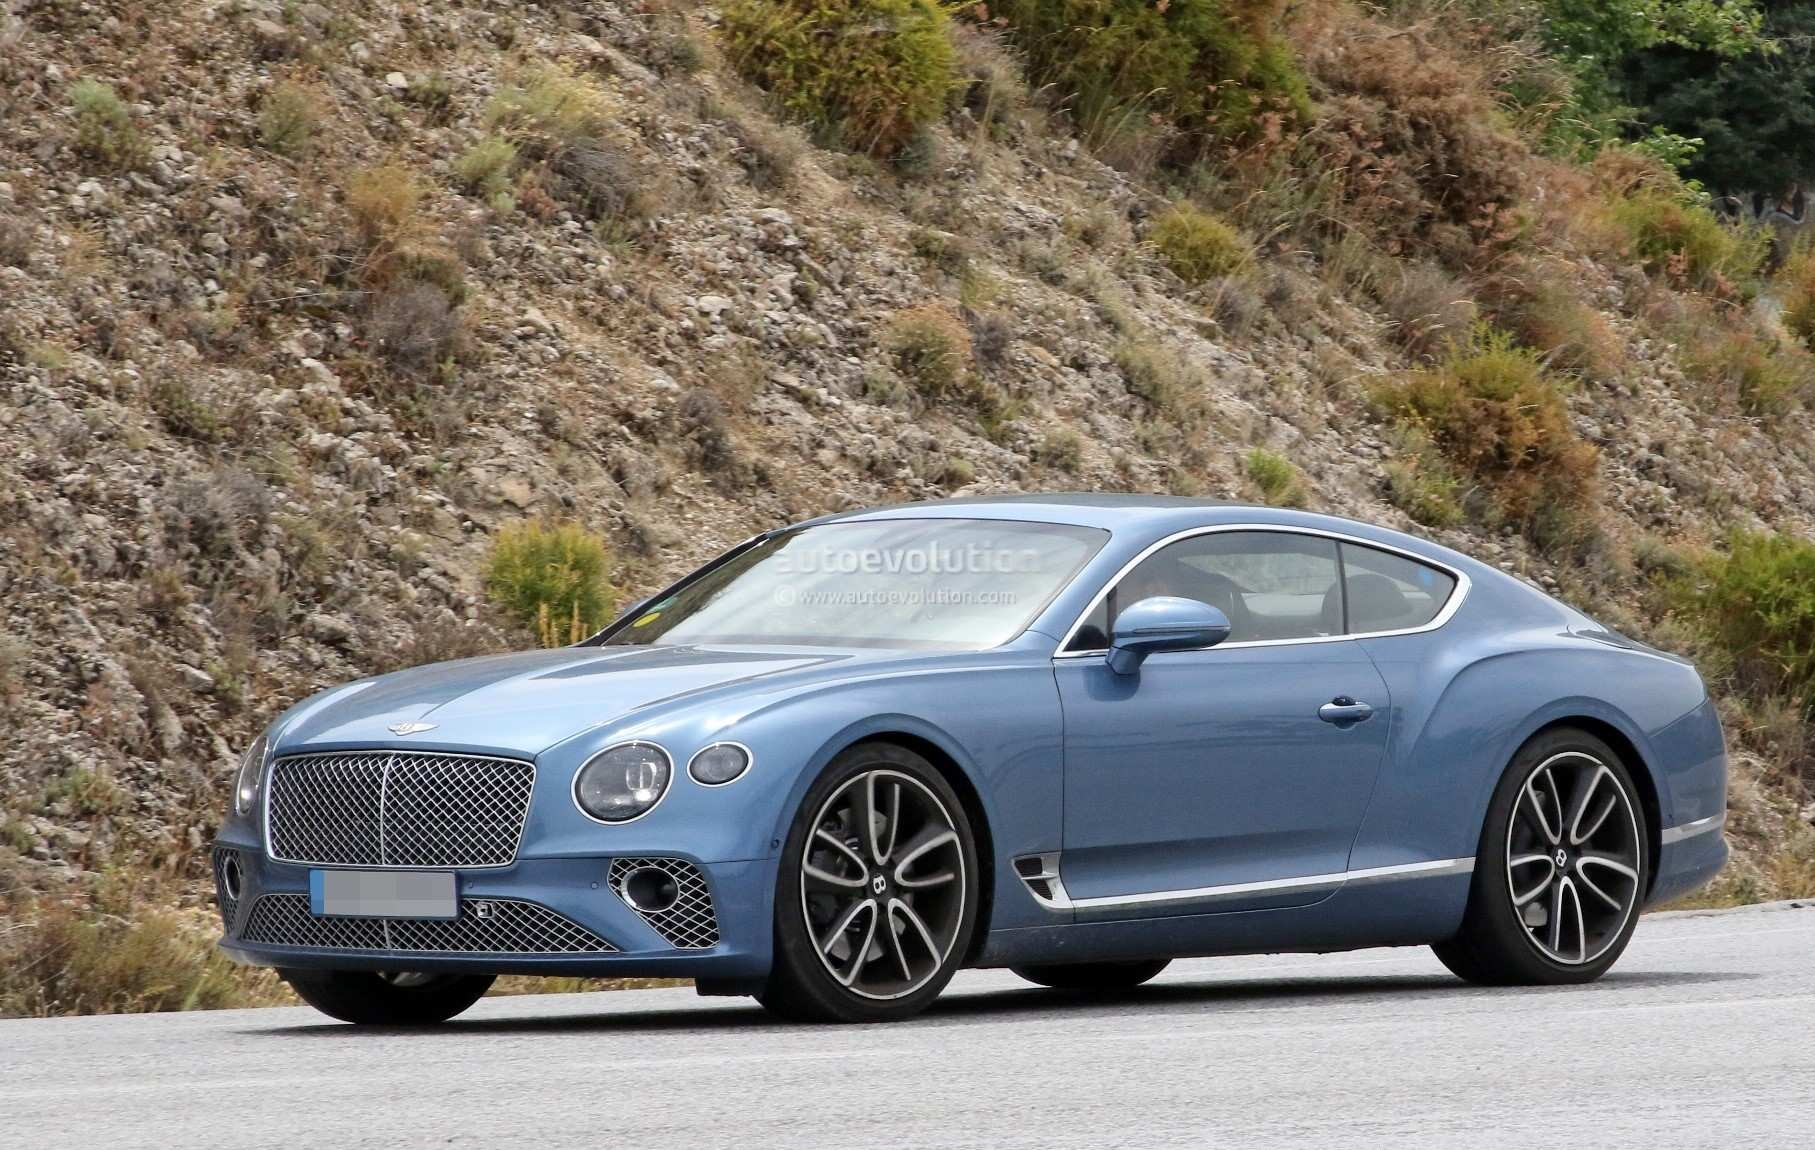 11 All New 2020 Bentley Gt Picture by 2020 Bentley Gt